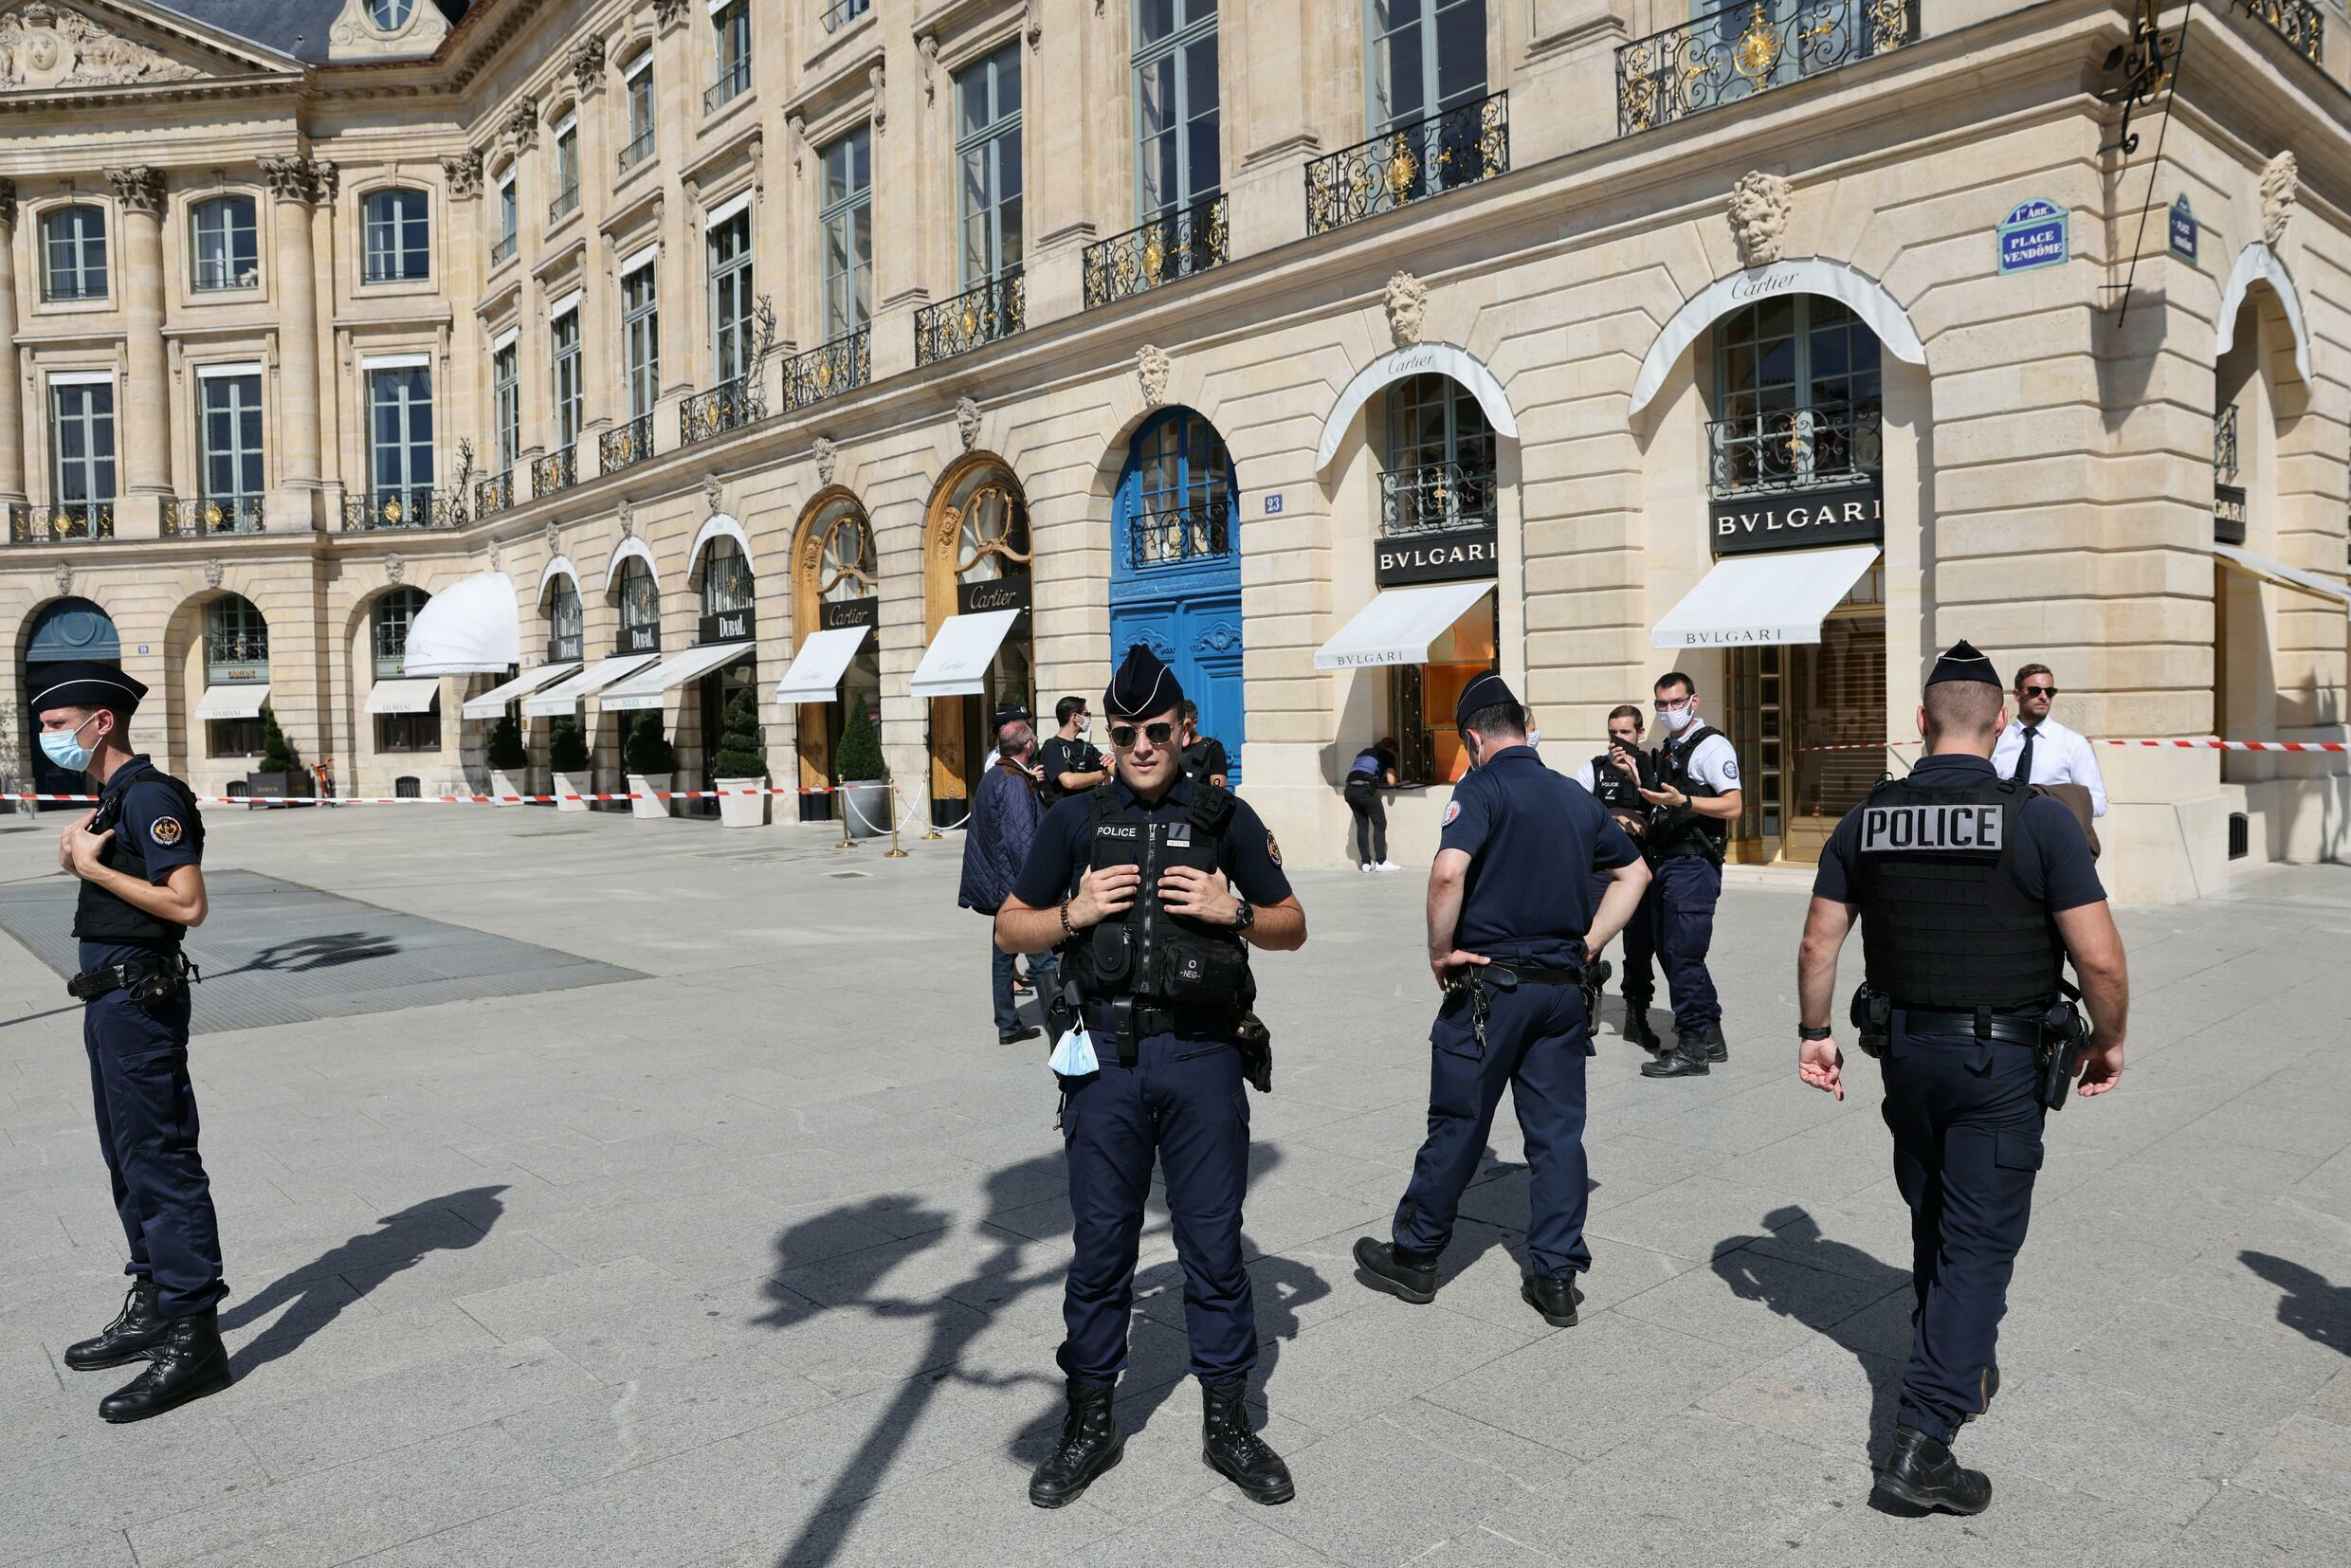 Police officers outside the Bulgari boutique on the Place Vendome in Paris on Tuesday.